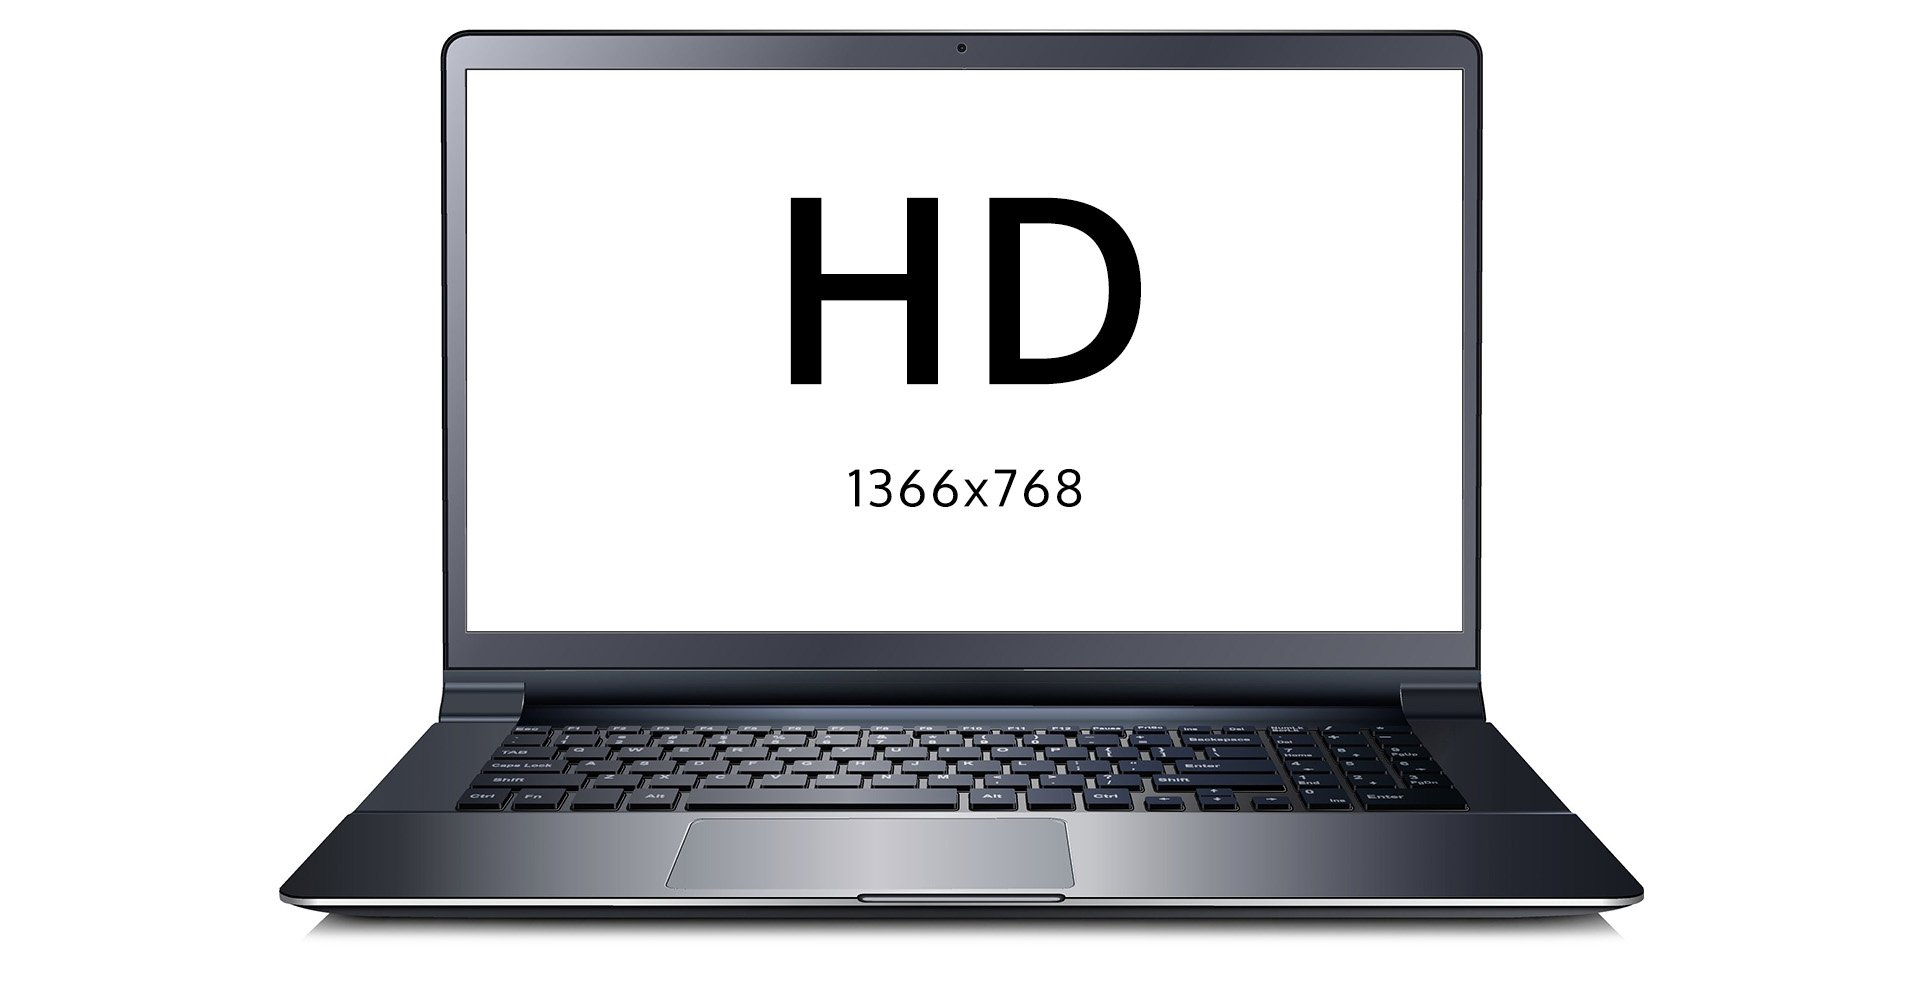 Fujitsu LifeBook A357 (S26391K425V300) 16 GB RAM/ 256 GB + 256 GB SSD/ Windows 10 Pro                             HD 1366x768 resolutsioon